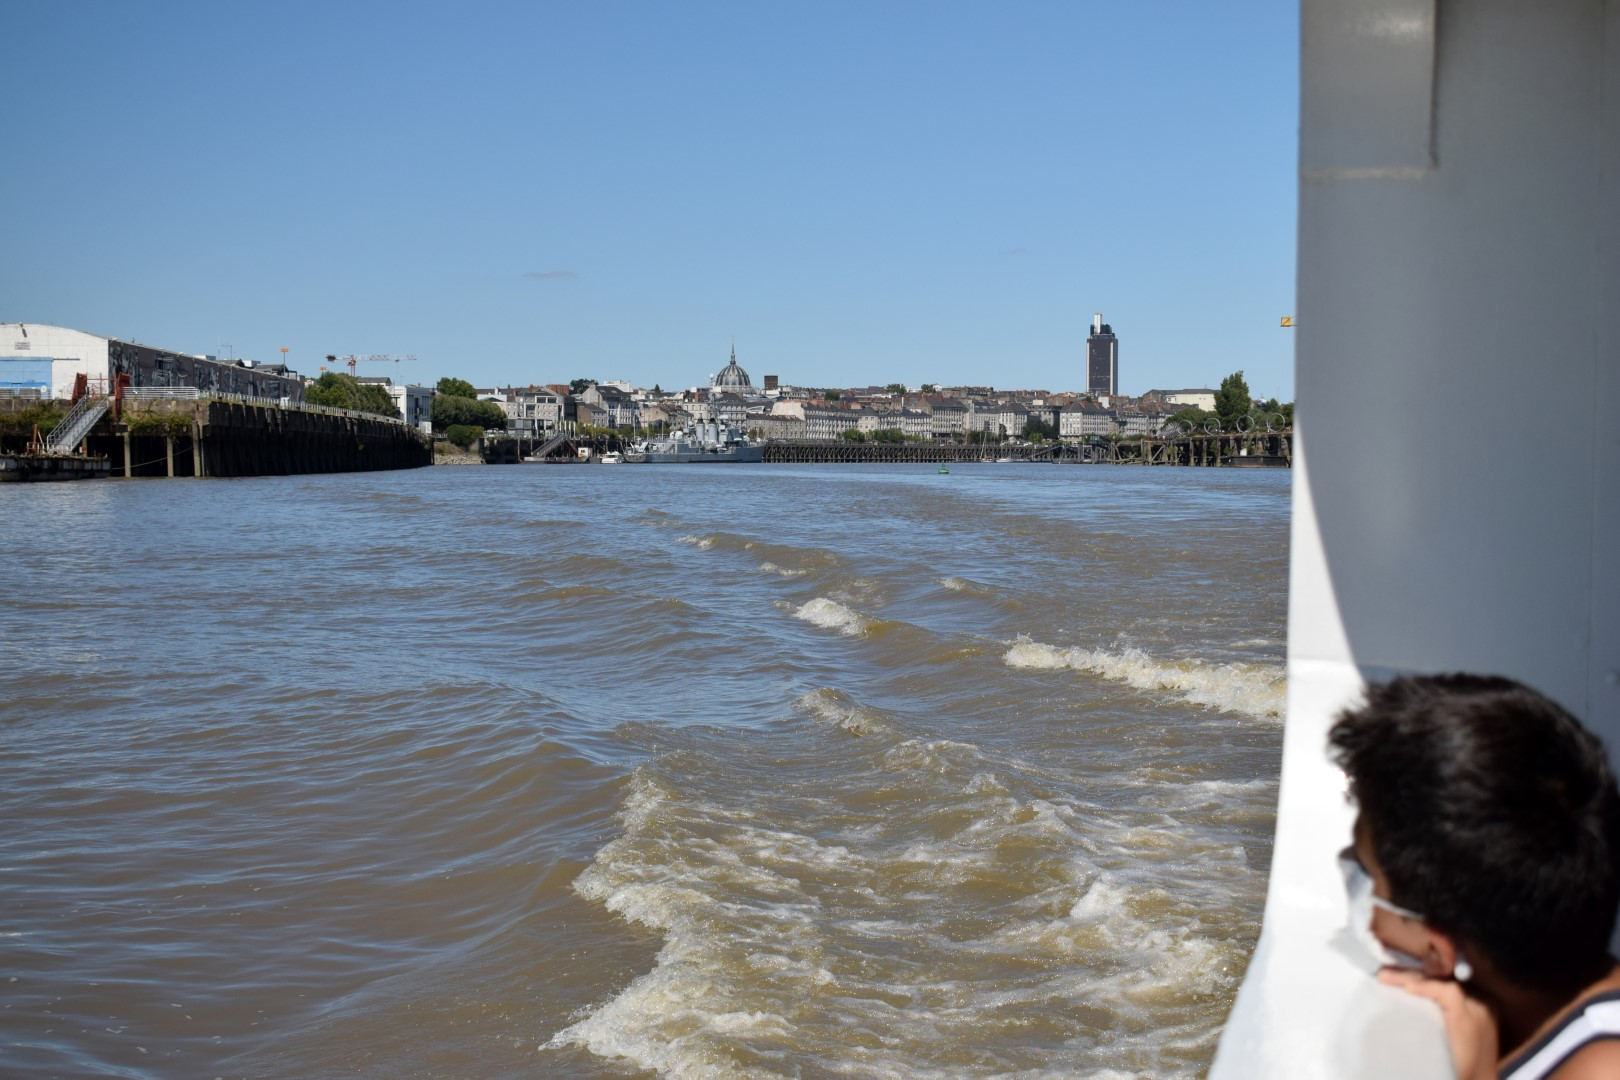 The Navibus crossing the Loire River, Nantes, July 2020